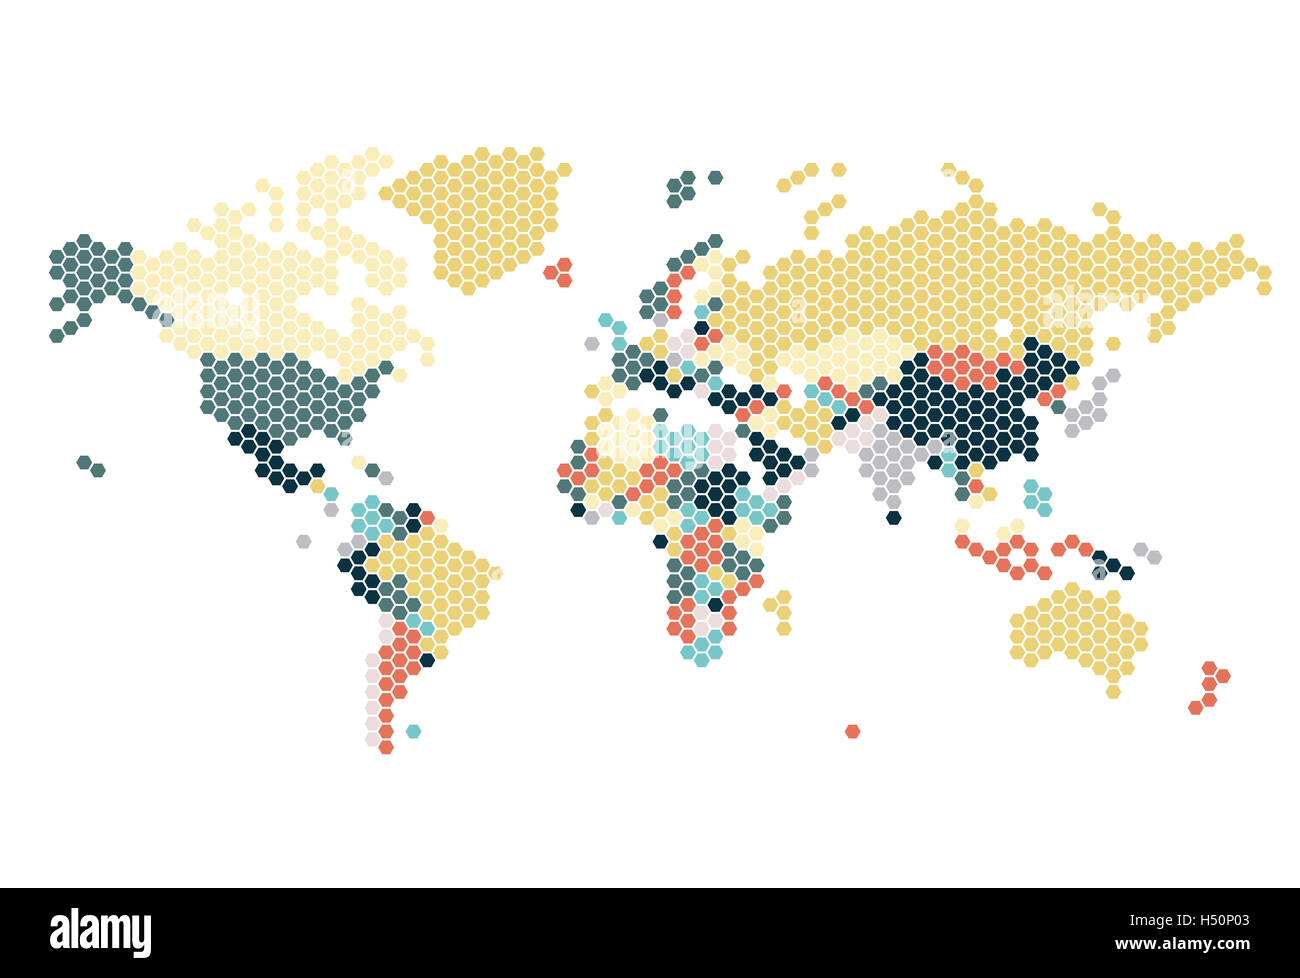 Dotted world map of hexagonal dots on white background stock photo dotted world map of hexagonal dots on white background gumiabroncs